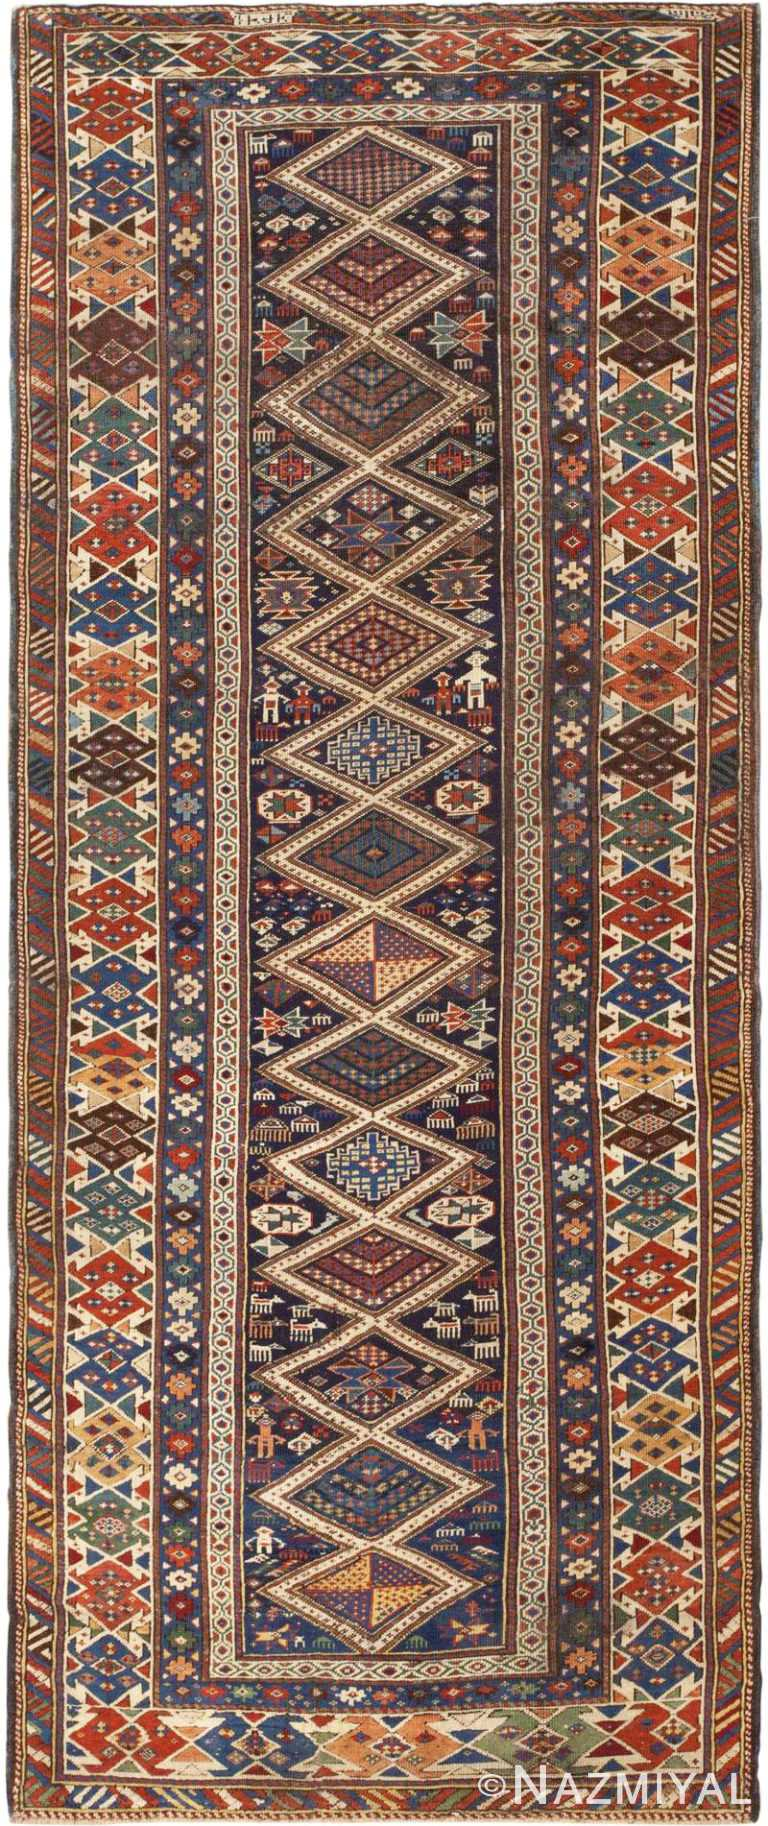 Antique Caucasian Shirvan Rug #46196 by Nazmiyal Antique Rugs